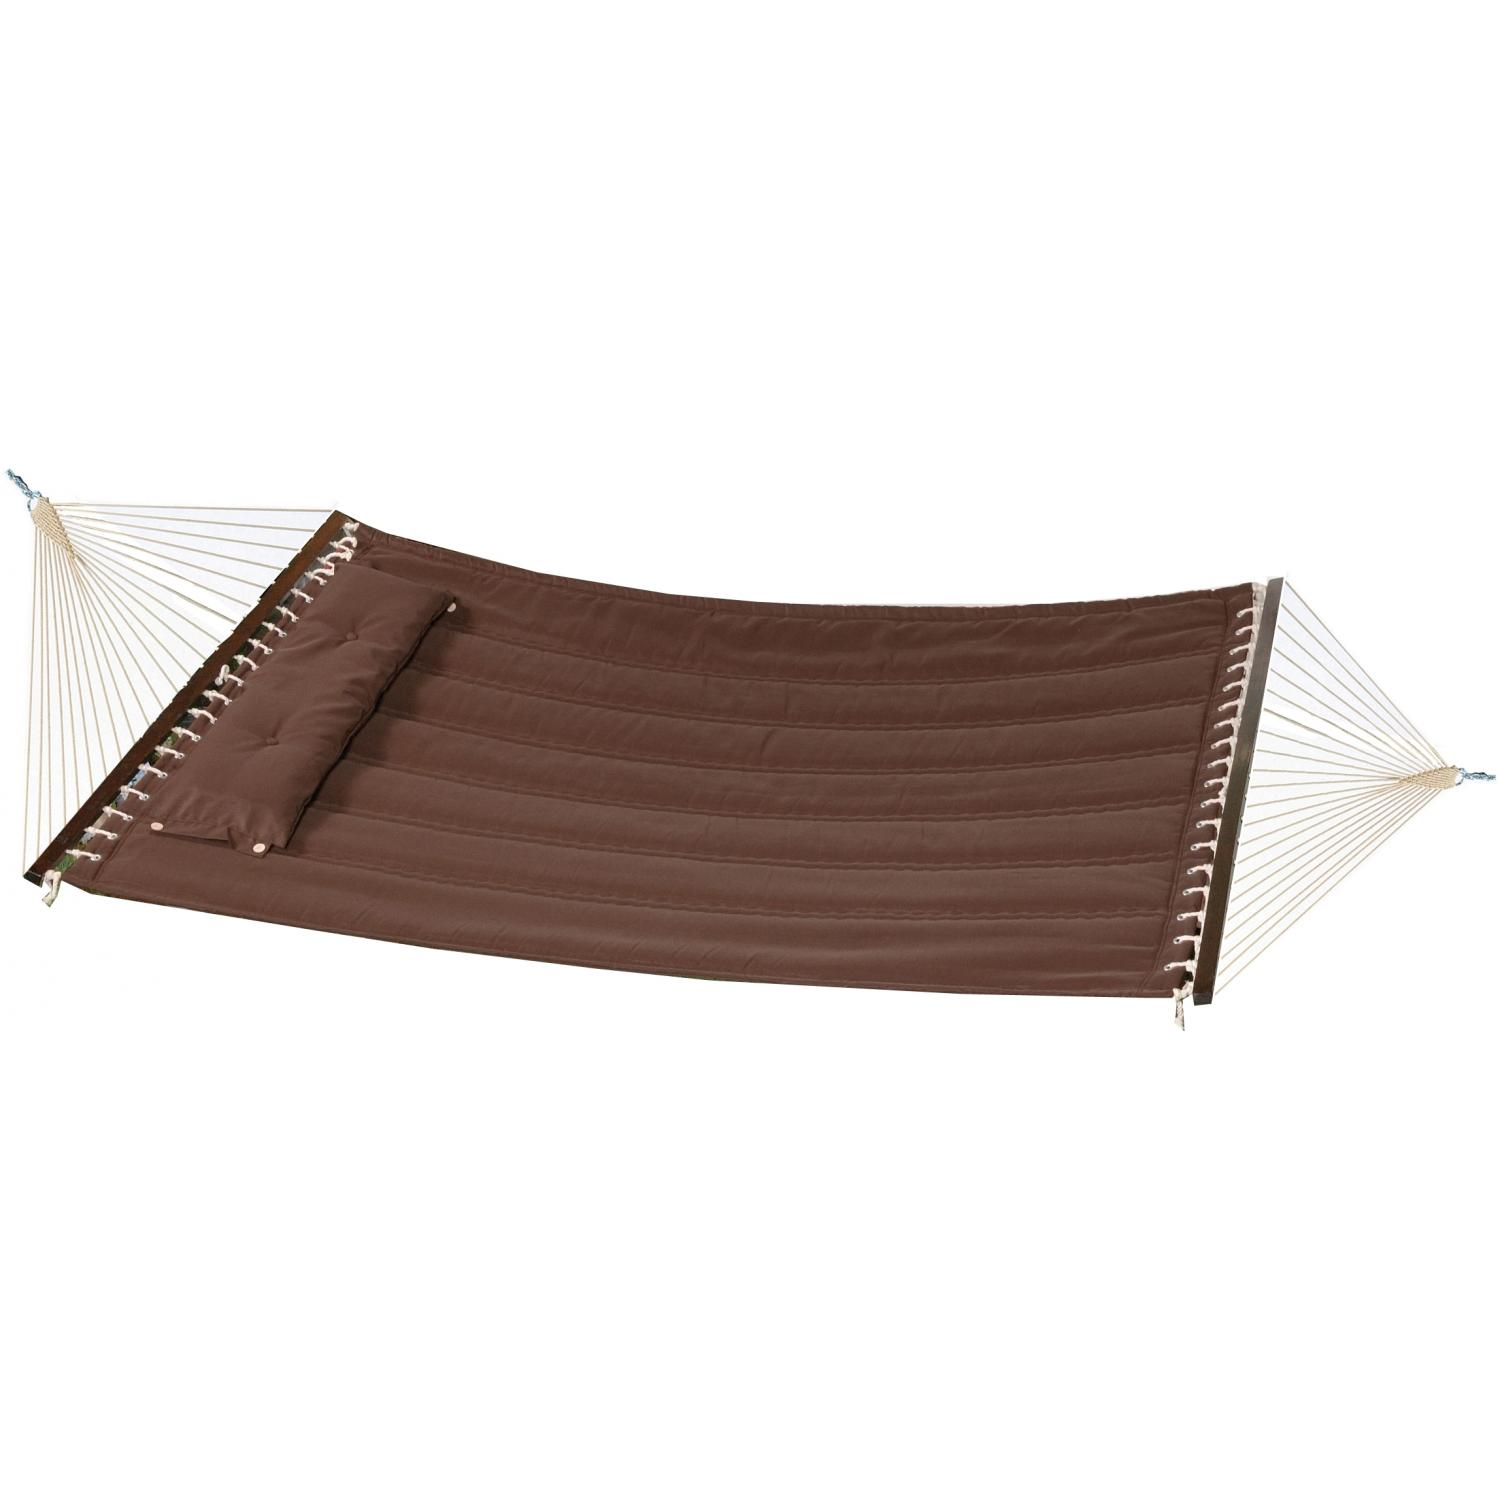 Bliss Hammocks Poly Quilted Hammock With Pillow - Cocoa Brown